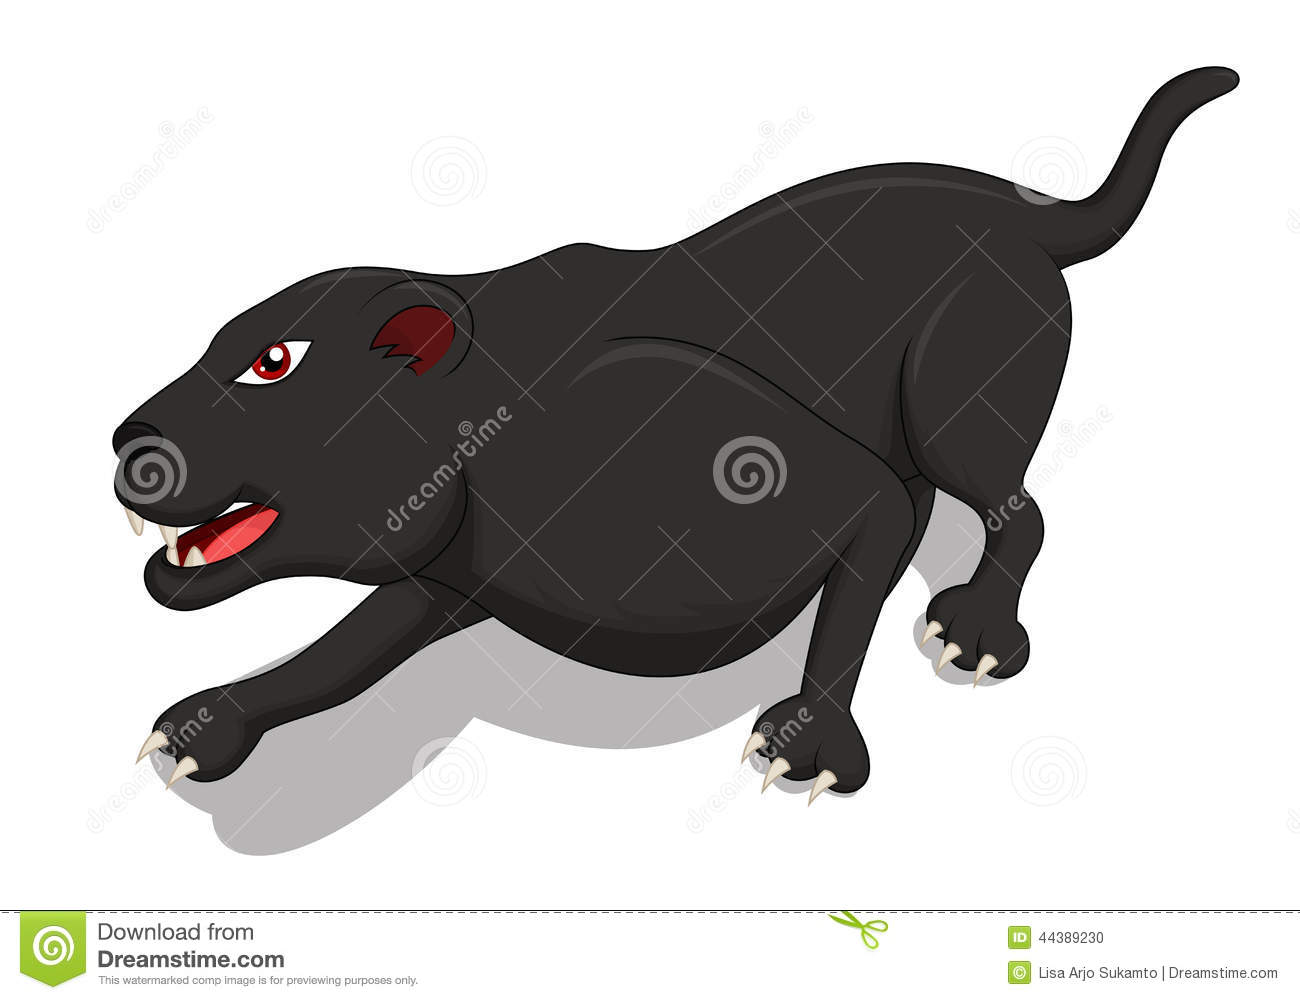 Hungry Black Panther Cartoon Stock Vector - Image: 44389230